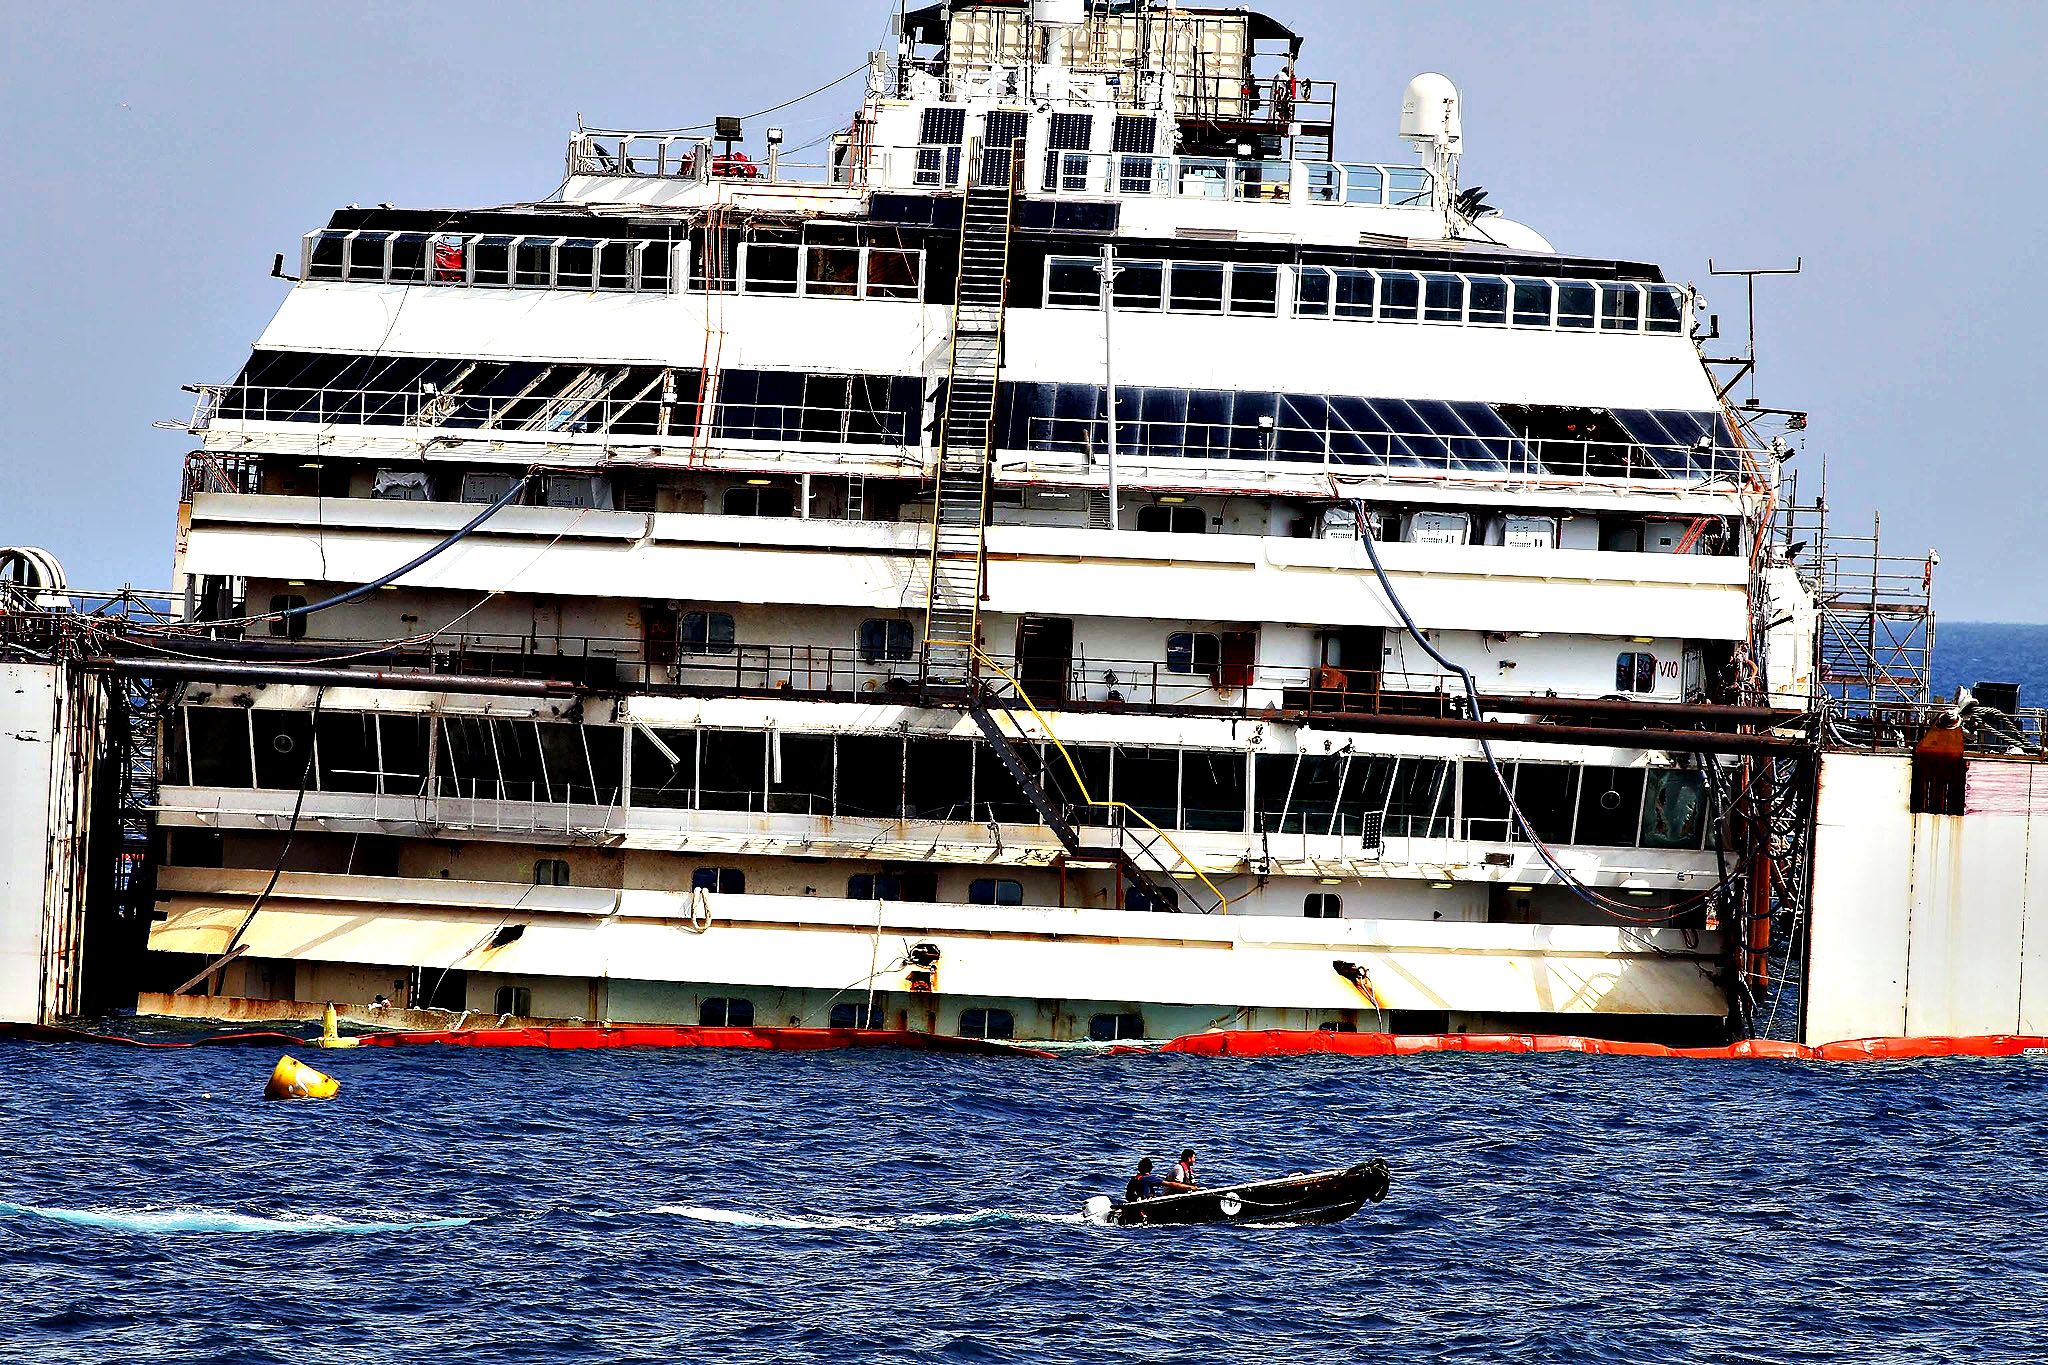 The wreck of the Costa Concordia cruise ship, which was hauled upright in September but stil partially submerged, is slowly being refloated near the port of Giglio Island, Italy, 14 July 2014 in one of the biggest maritime s The Concordia hit a reef and partly capsized on 13 January 2012, after being steered dangerously close to Giglio. Thirty-two of the 4,229 people onboard died in the accident.